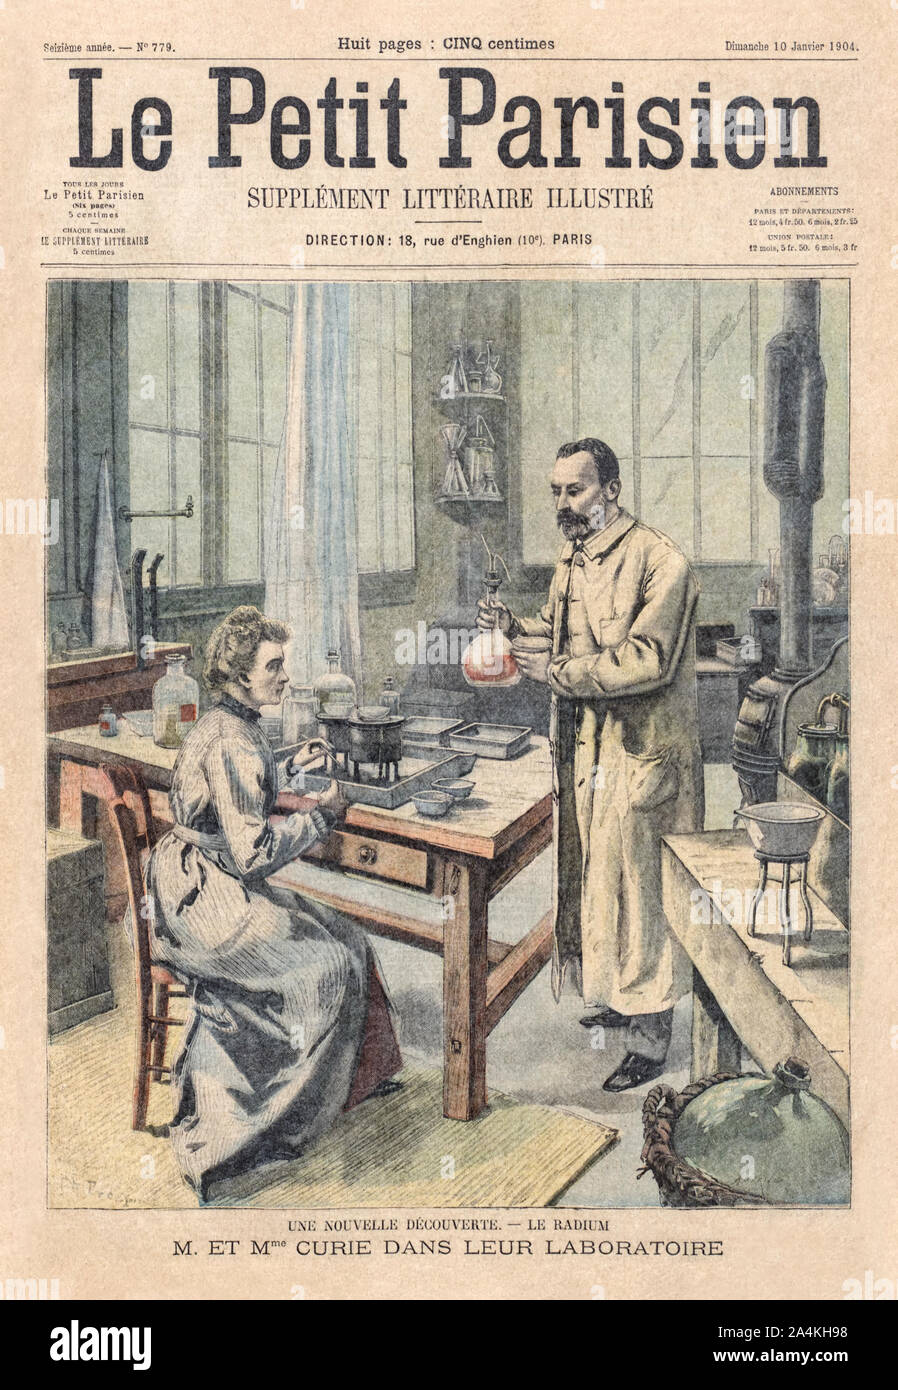 Marie Curie (1867-1934) and Pierre Curie (1859-1906) shown conducting an experiment on the cover of the Le Petit Parisien Illustrated literary supplement 10 January 1904 in honour of their joint winning of the Nobel Prize for their pioneering research on radioactivity shortly before in 1903. Marie Curie was the first woman to be awarded a Nobel Prize. Stock Photo